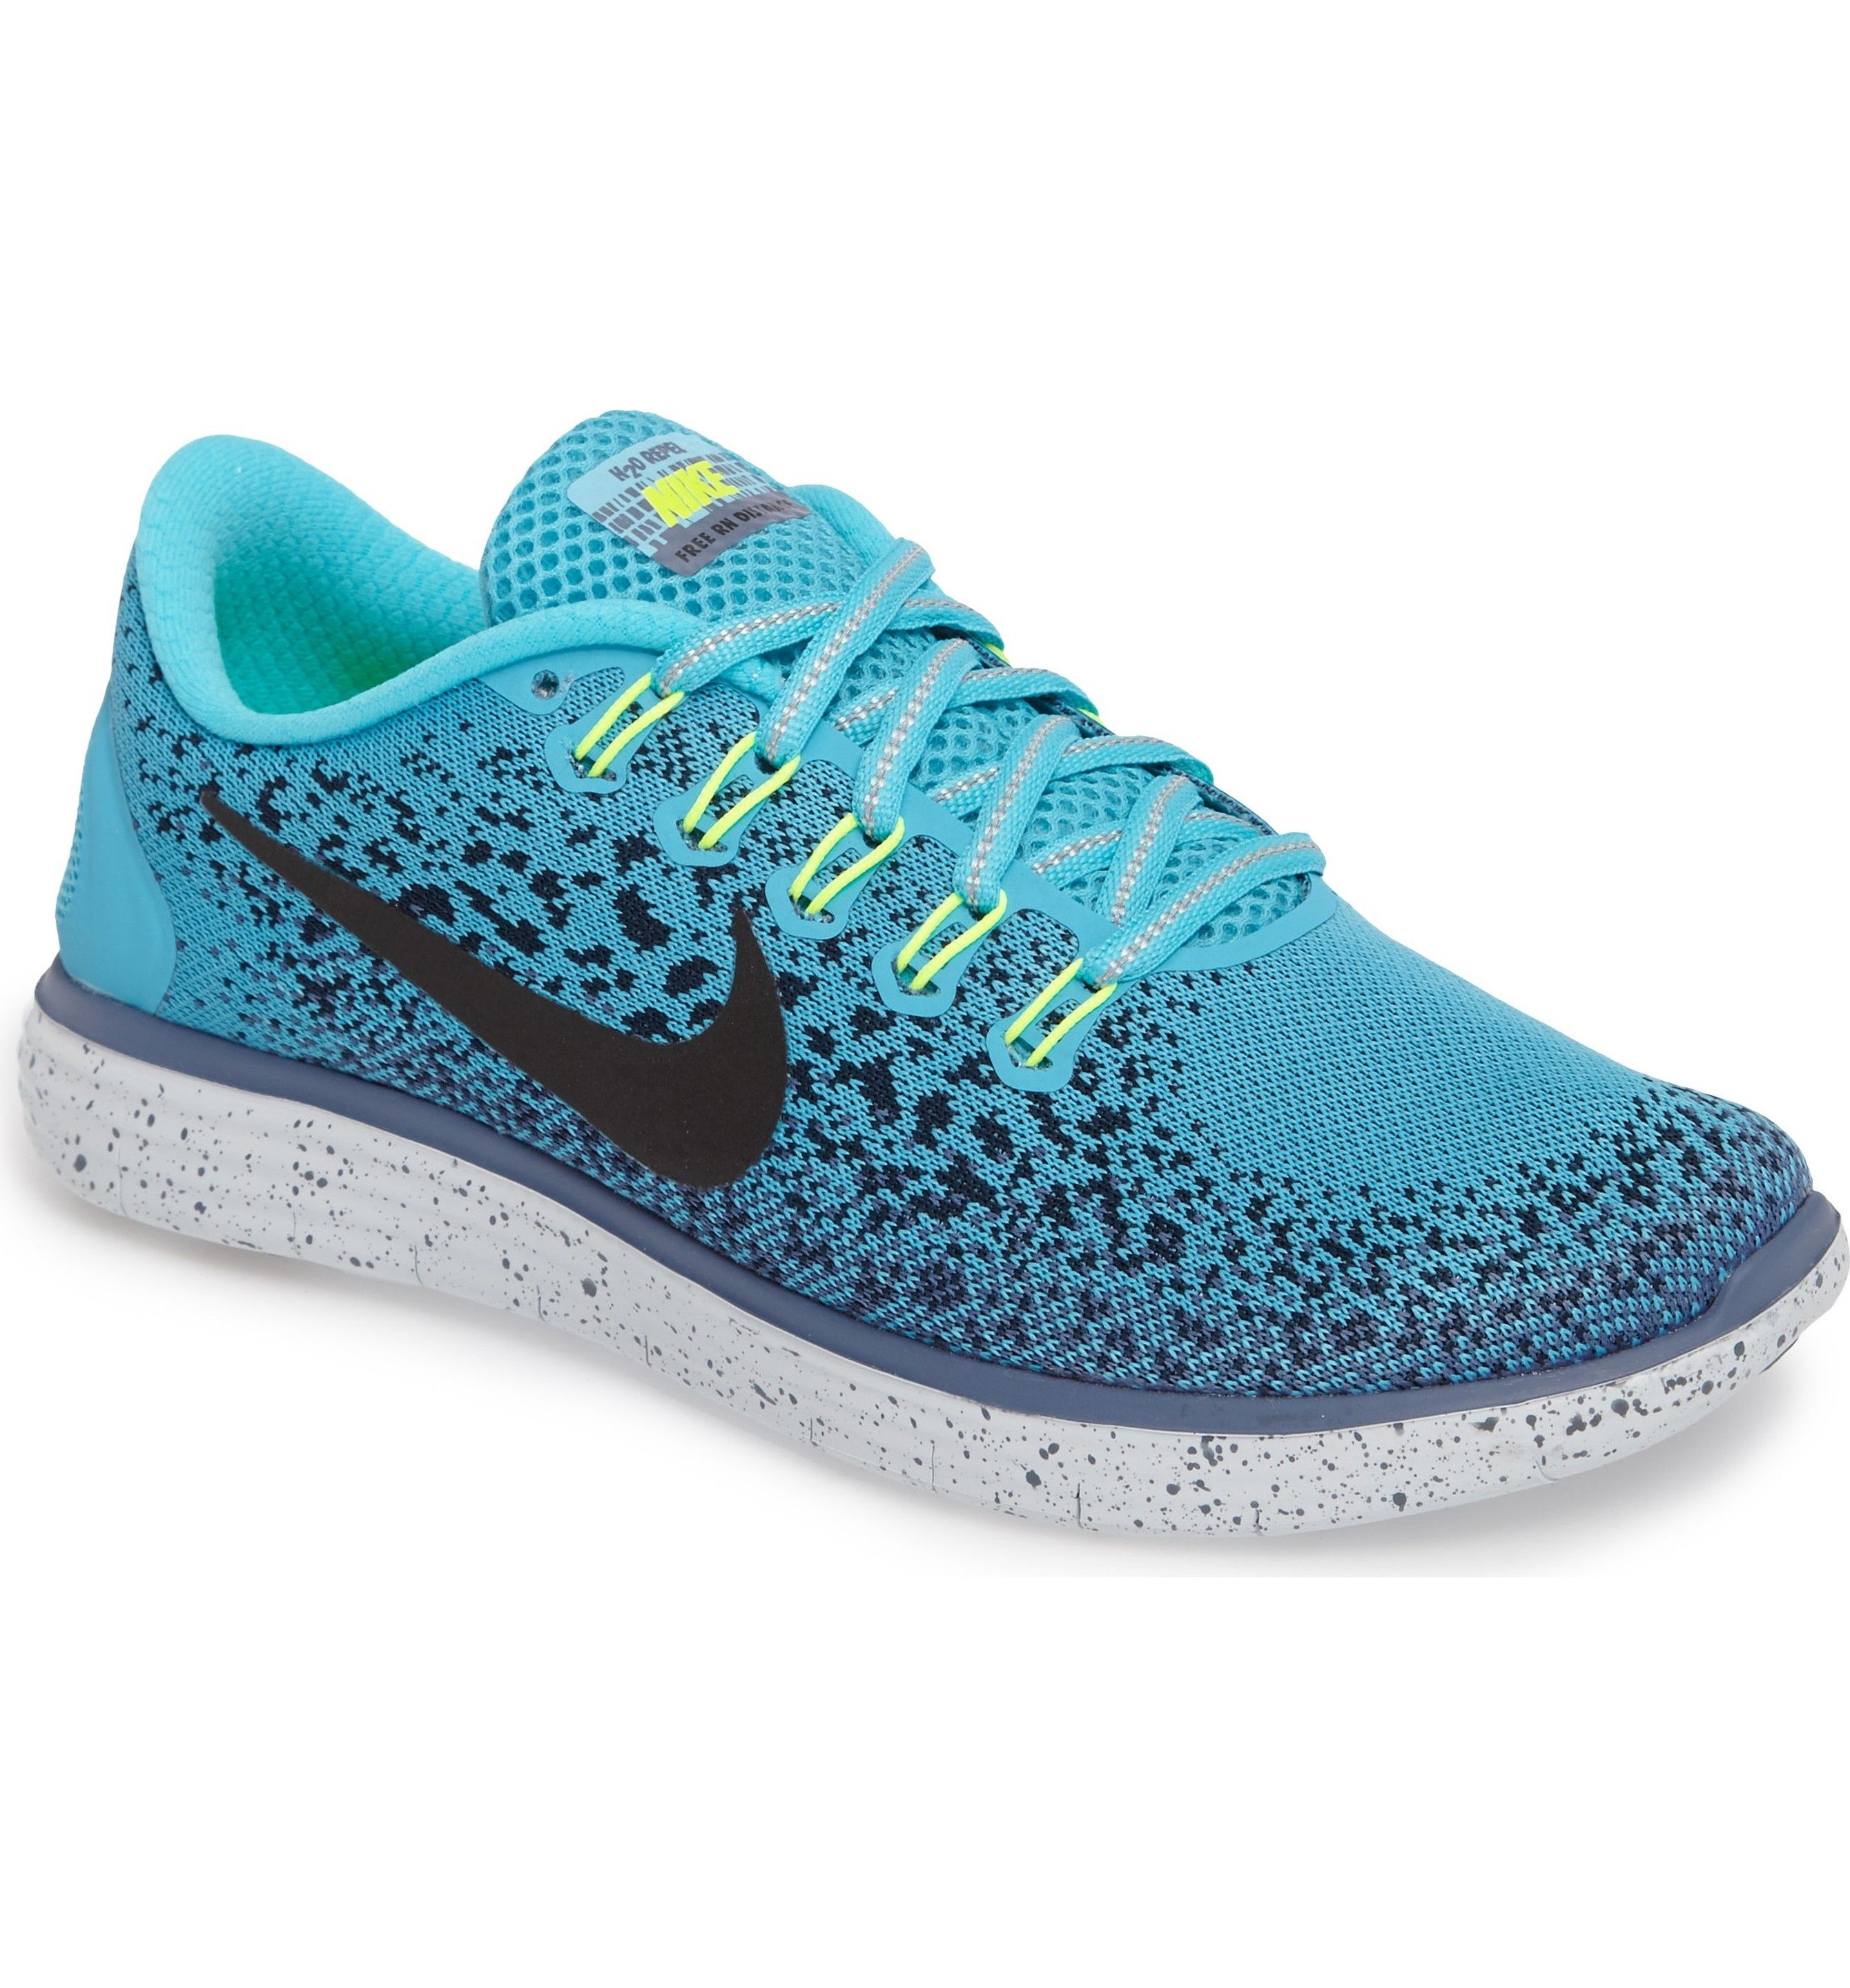 37c8ff3186d3f Main Image - Nike Free RN Distance Shield Running Shoe (Women)